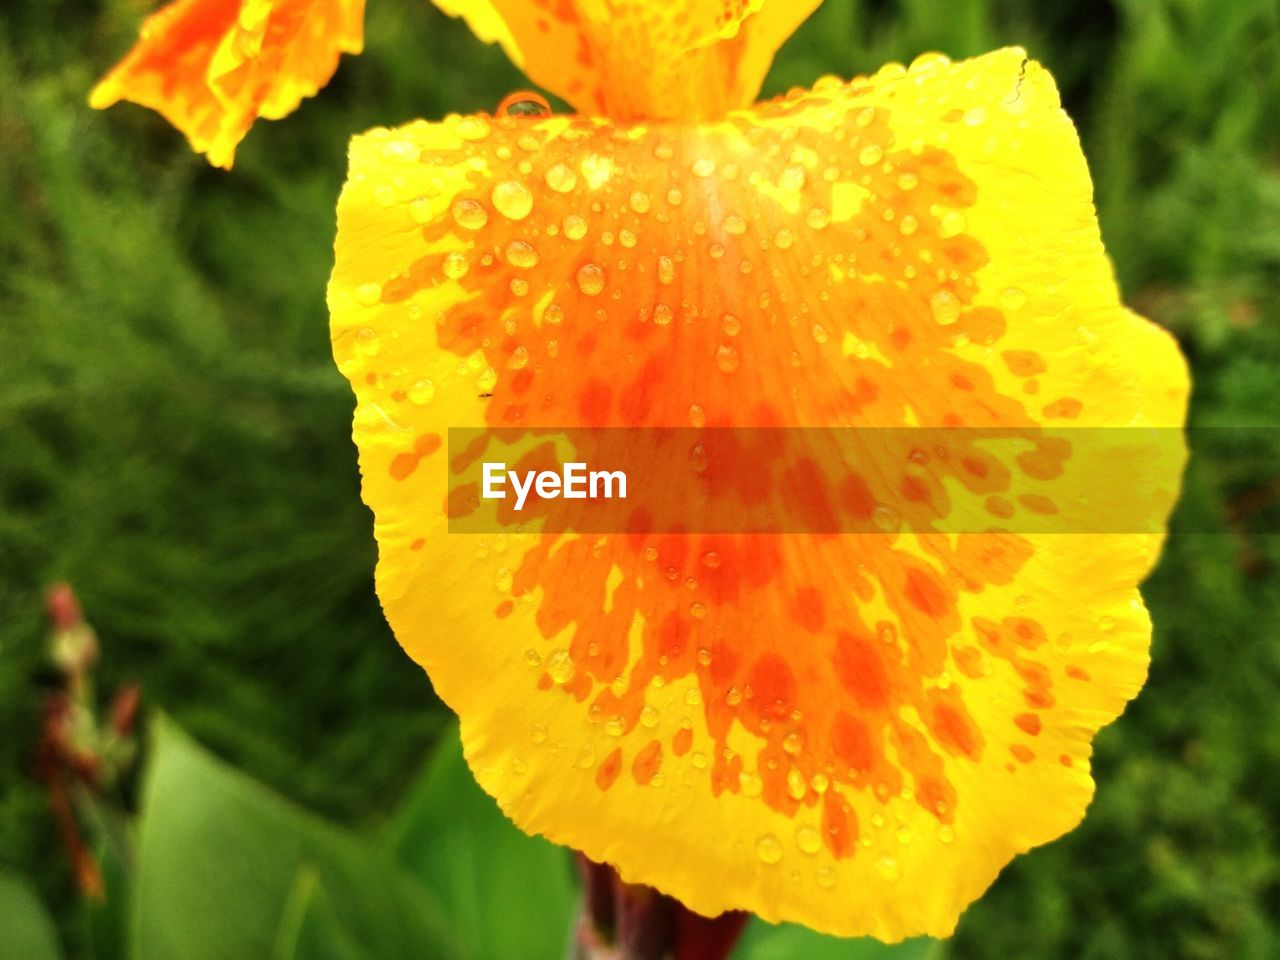 petal, flower, beauty in nature, flower head, freshness, drop, fragility, nature, close-up, growth, focus on foreground, plant, water, outdoors, day, wet, yellow, blooming, no people